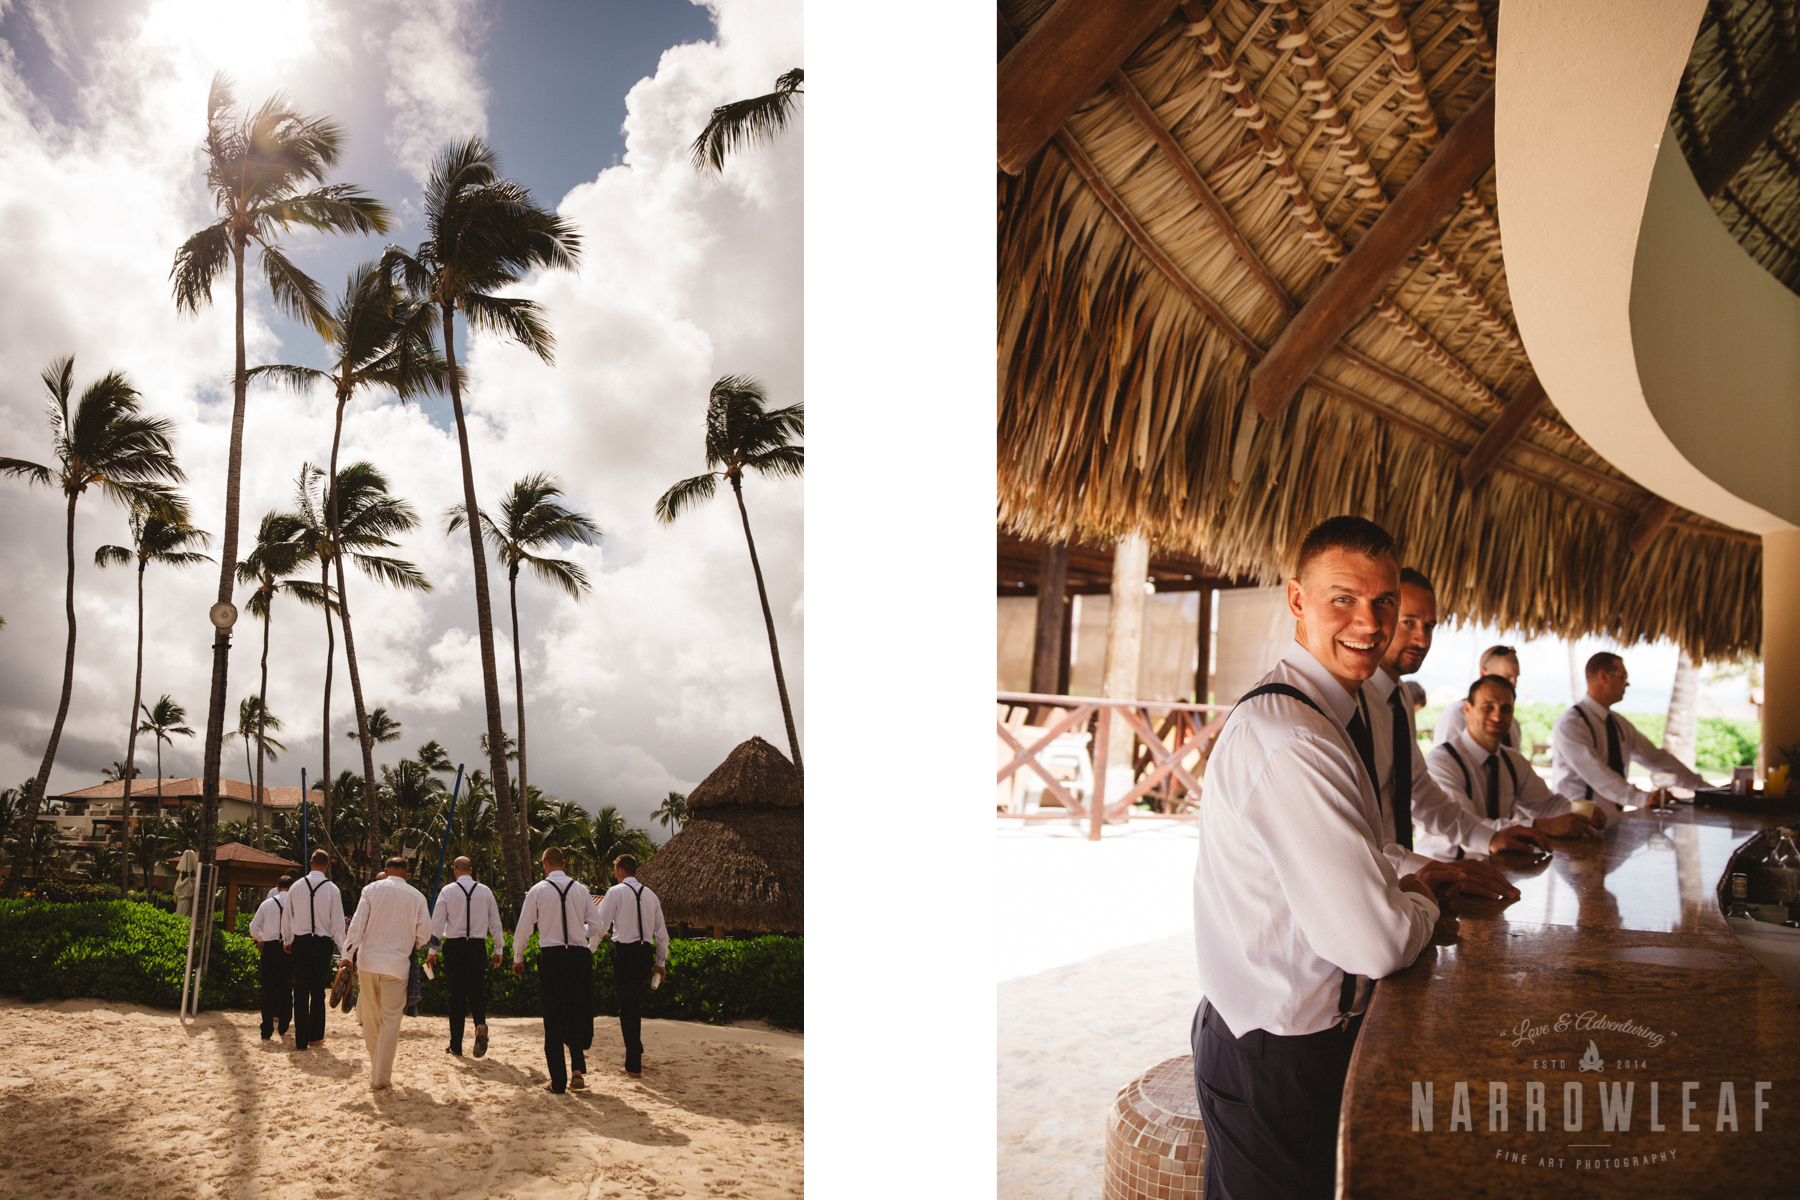 punta-cana-dominican-republic-destination-wedding-beach-groomsmen-bar.jpg